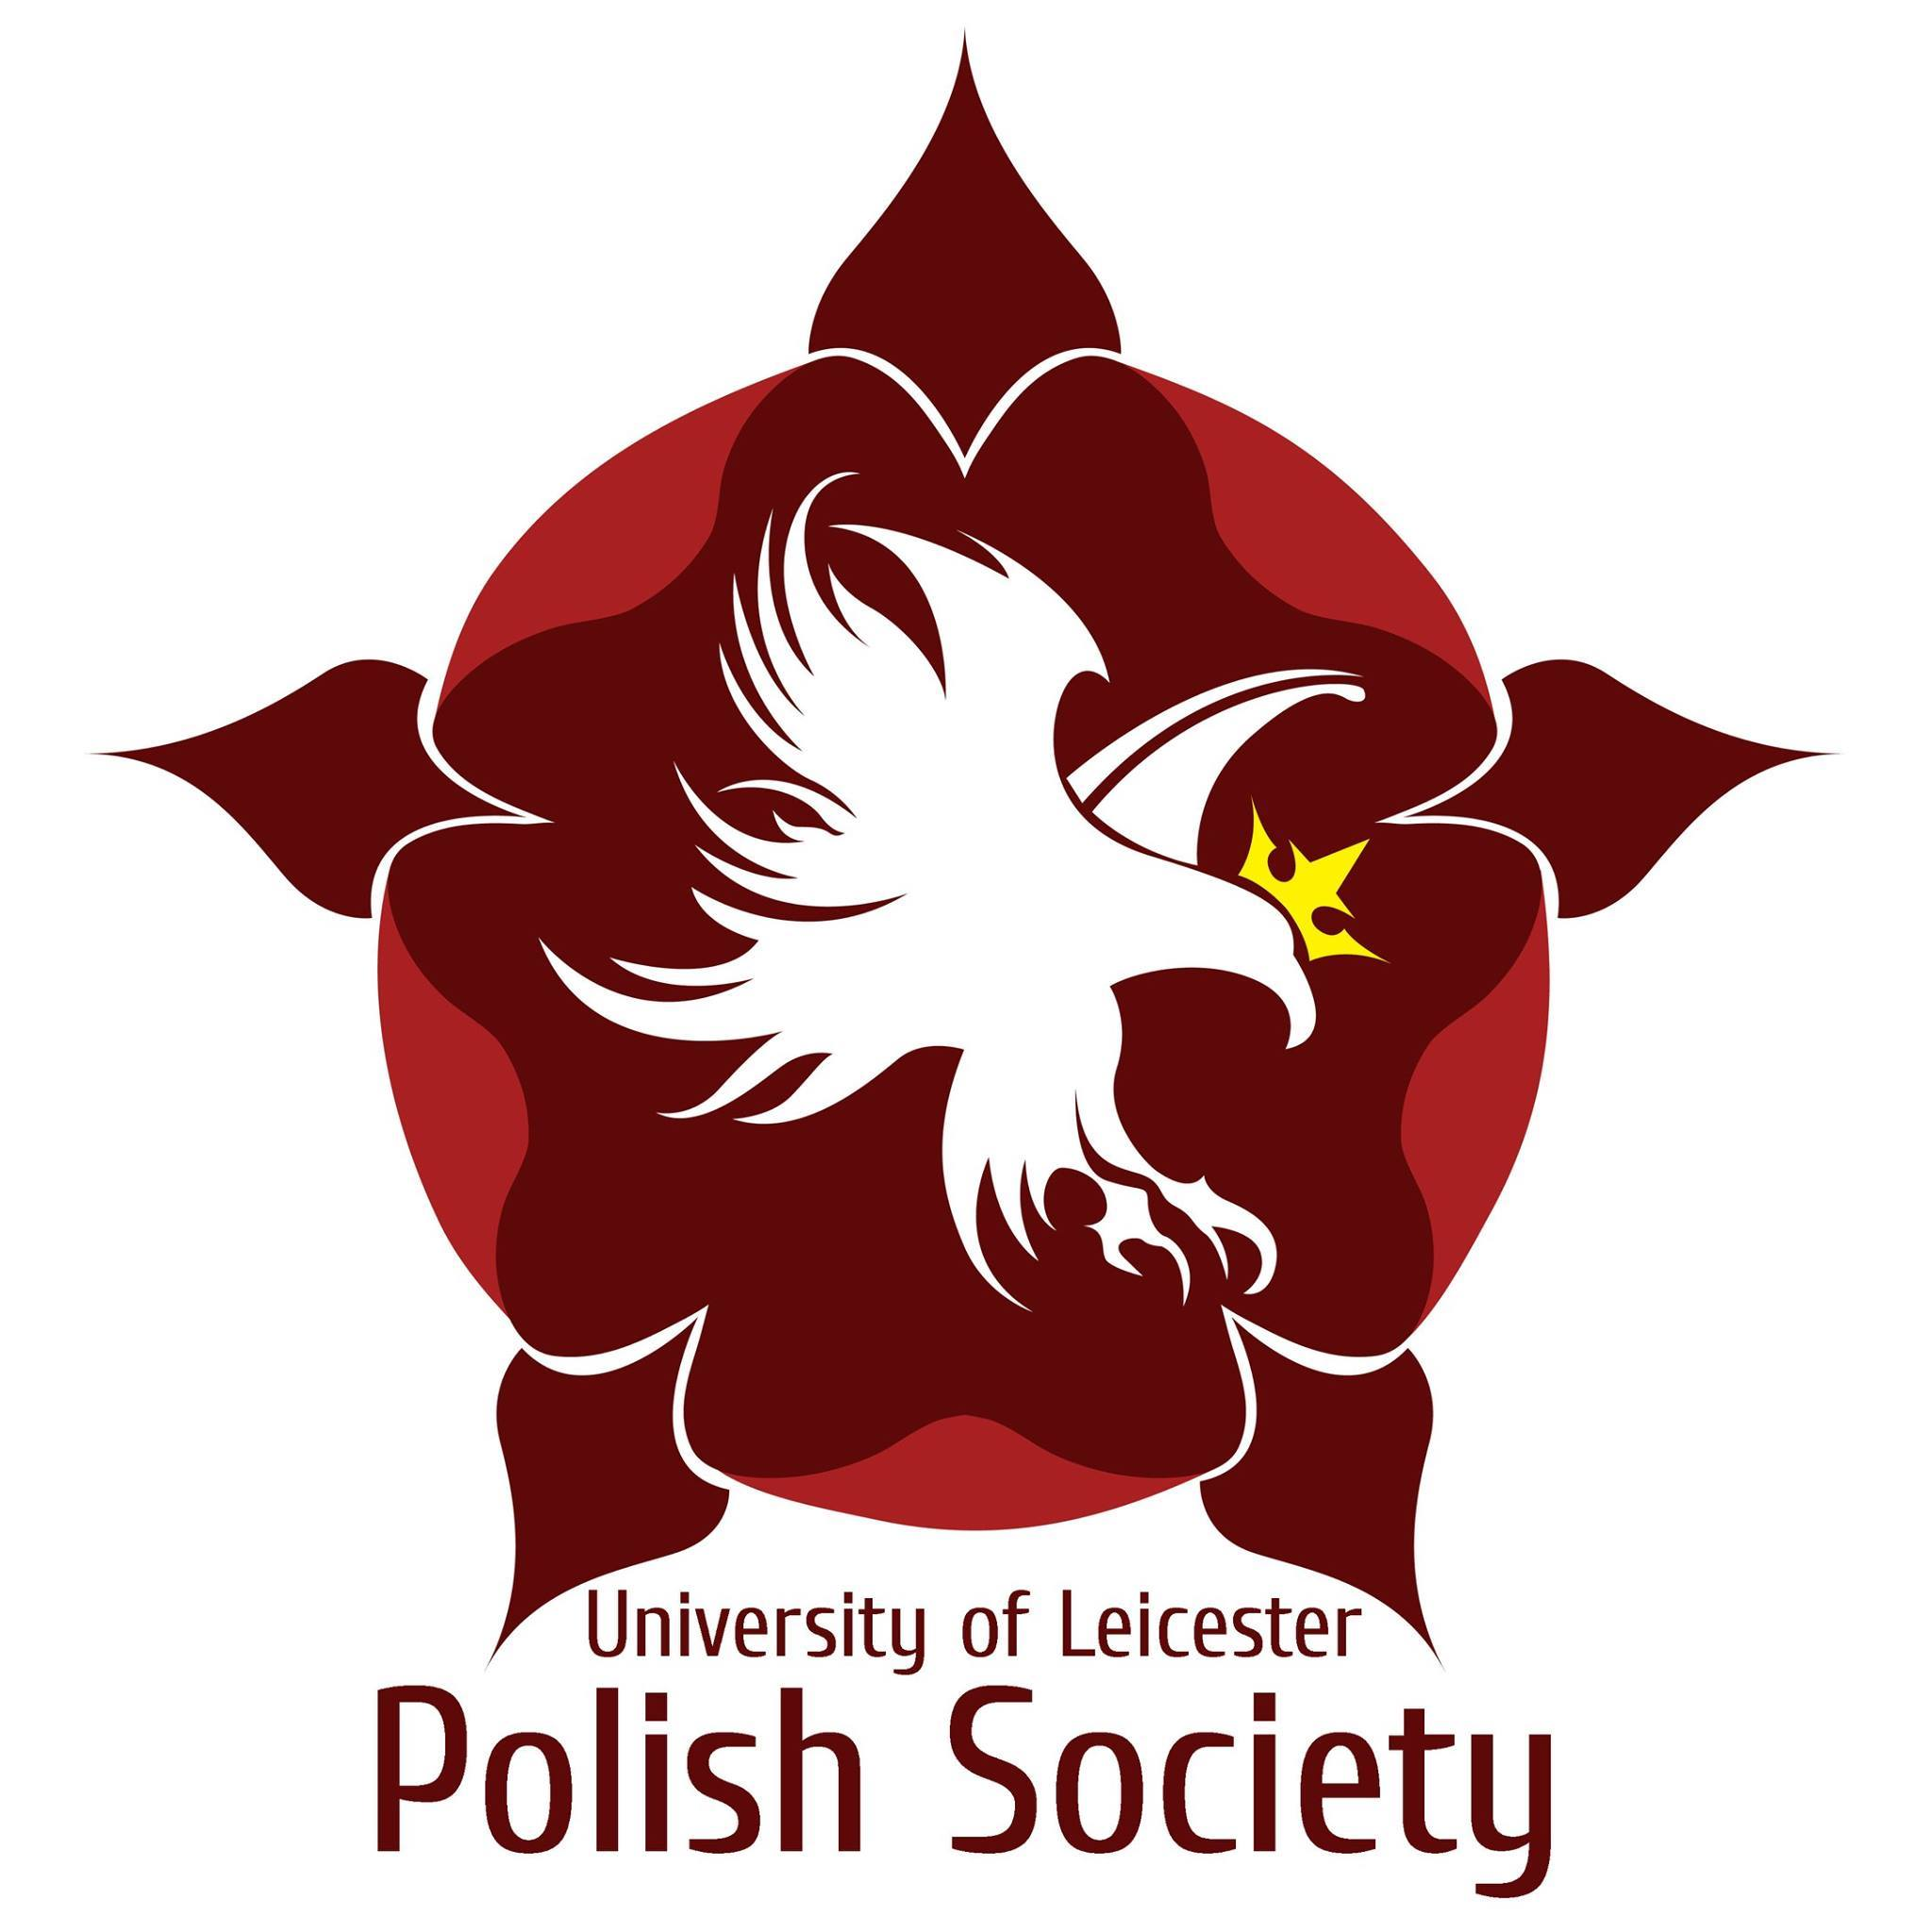 University of Leicester Polish Society